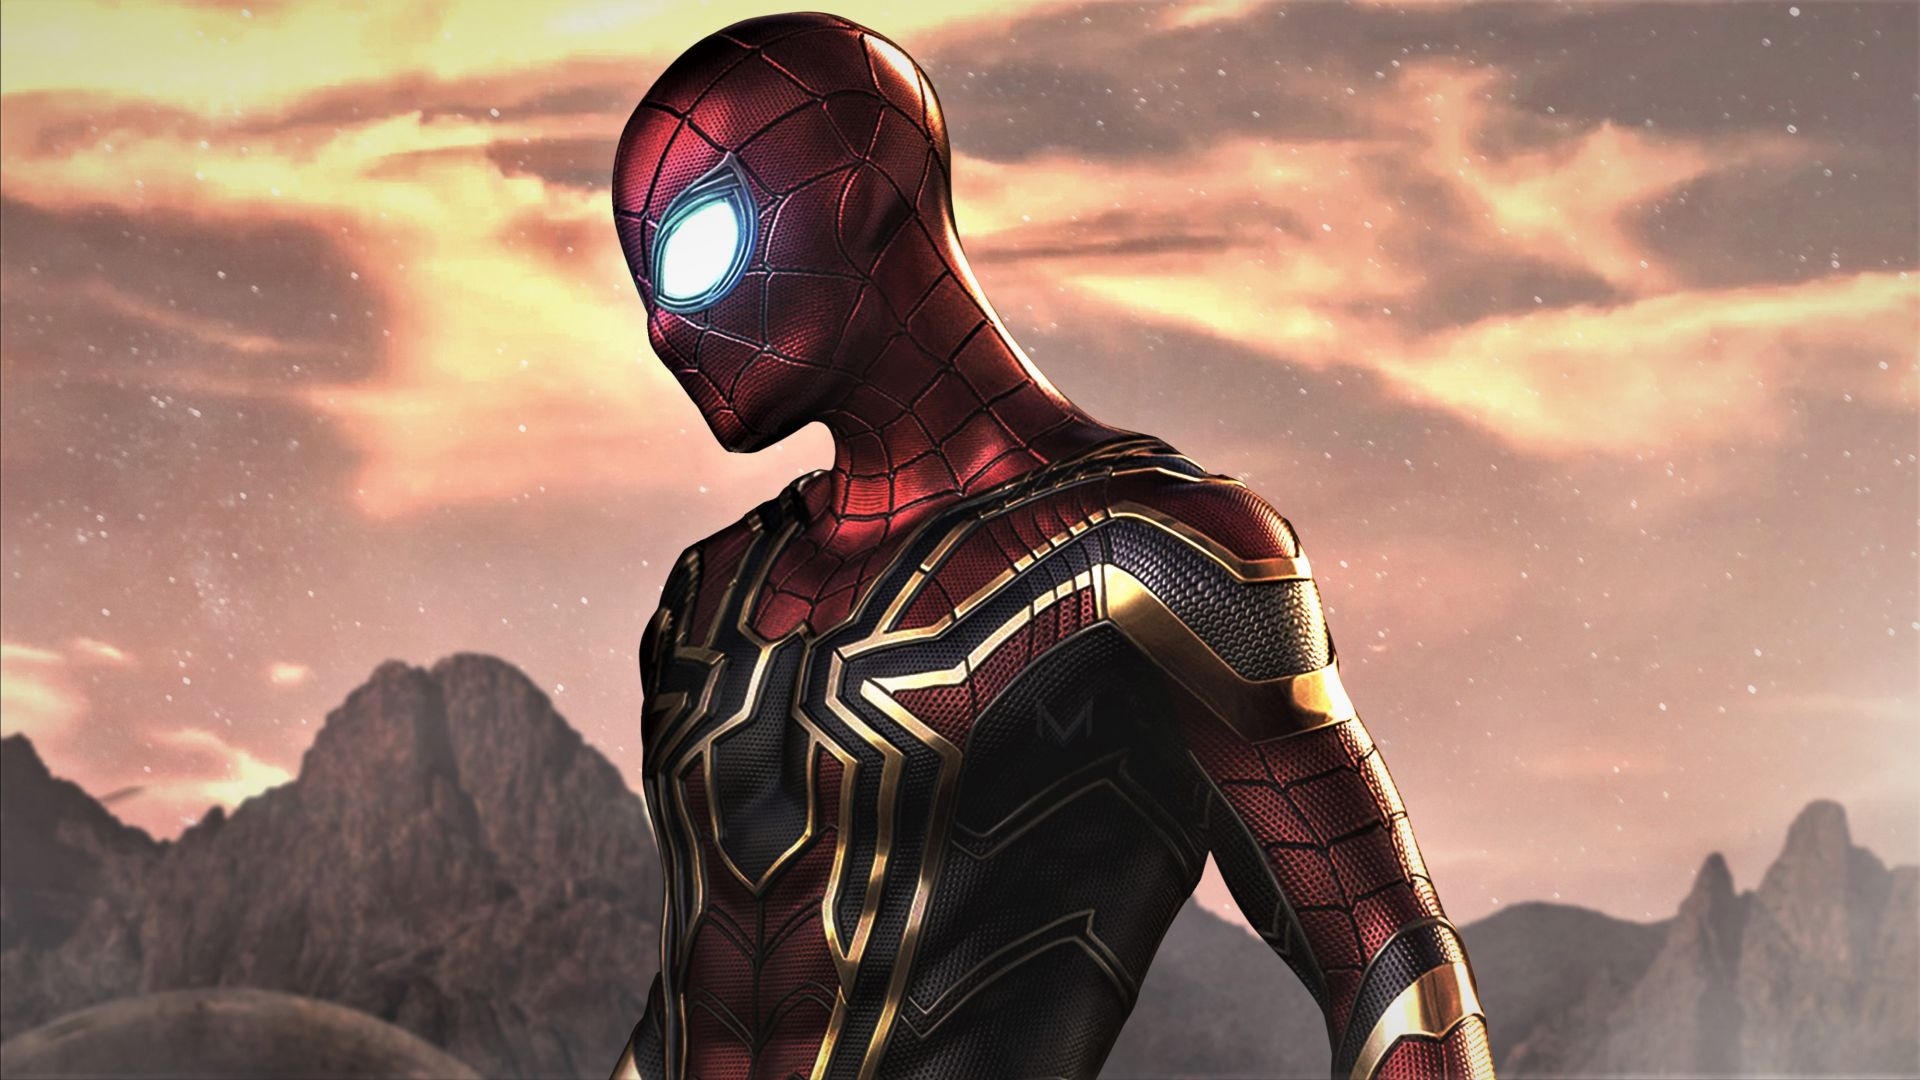 Spider-Man: Far From Home, poster, 4K (horizontal)